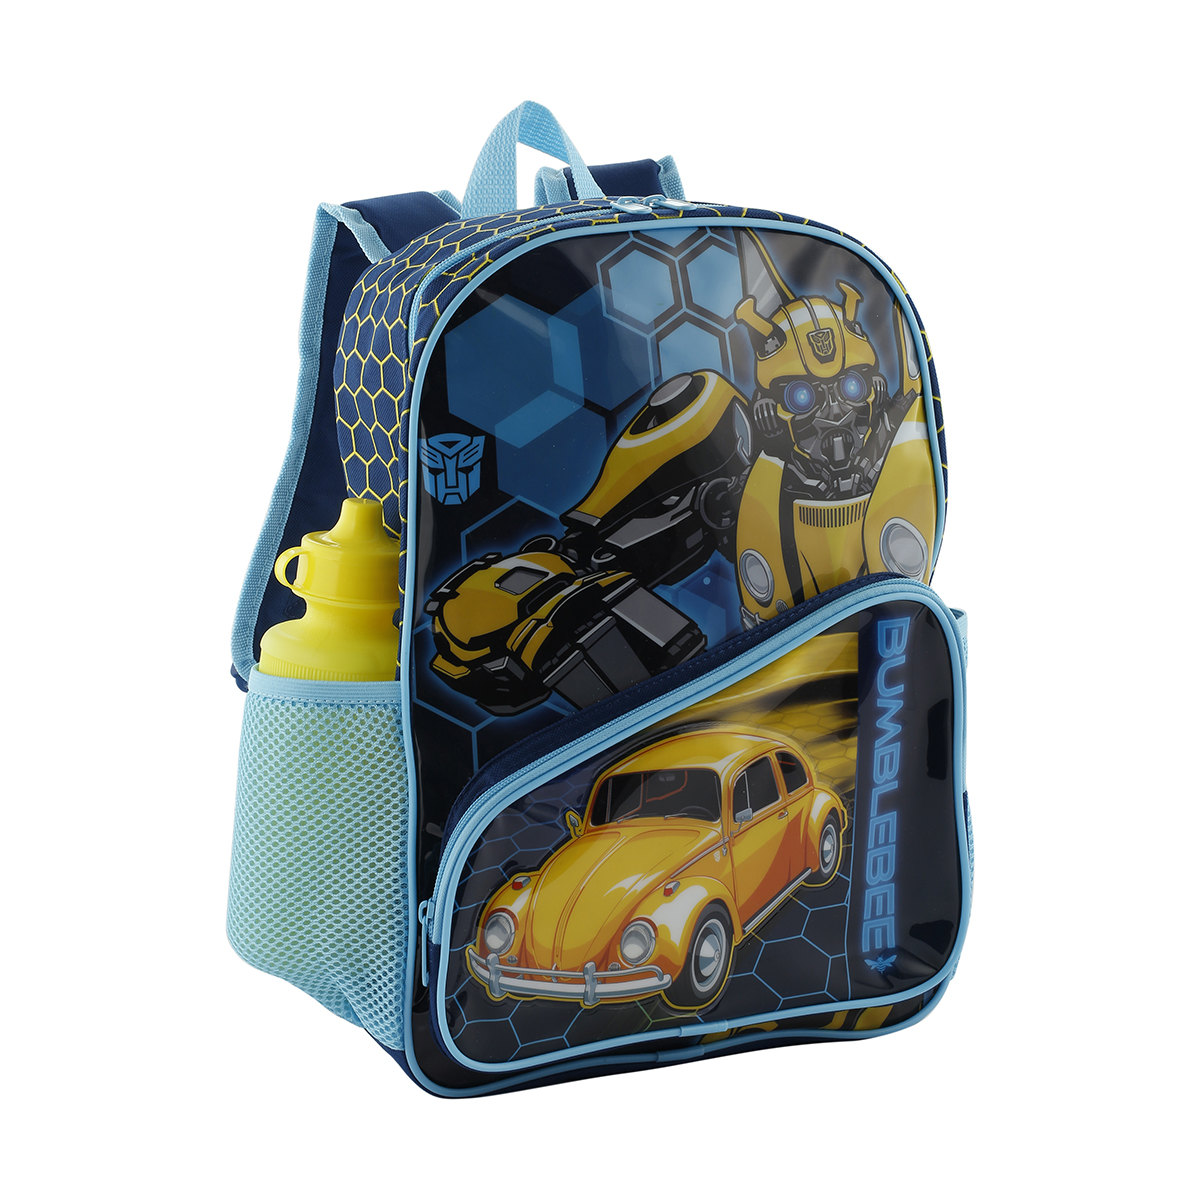 Transformers Bumblebee Movie Backpack Available At Kmart Australia ... dbd6b4e9c9